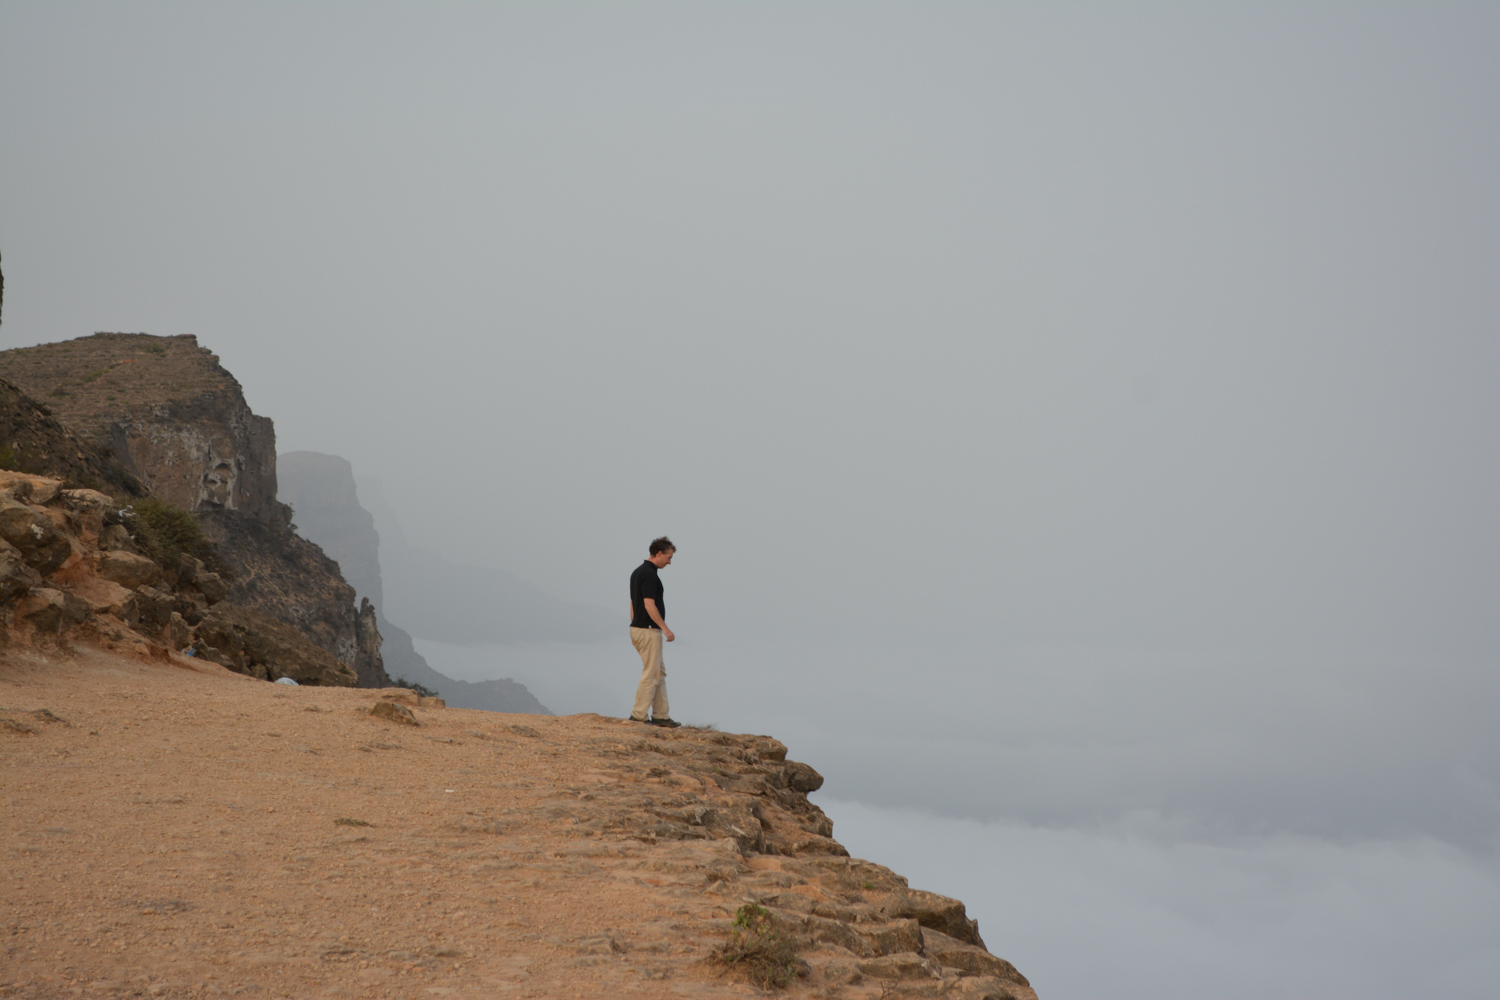 Looking over the edge into the clouds.